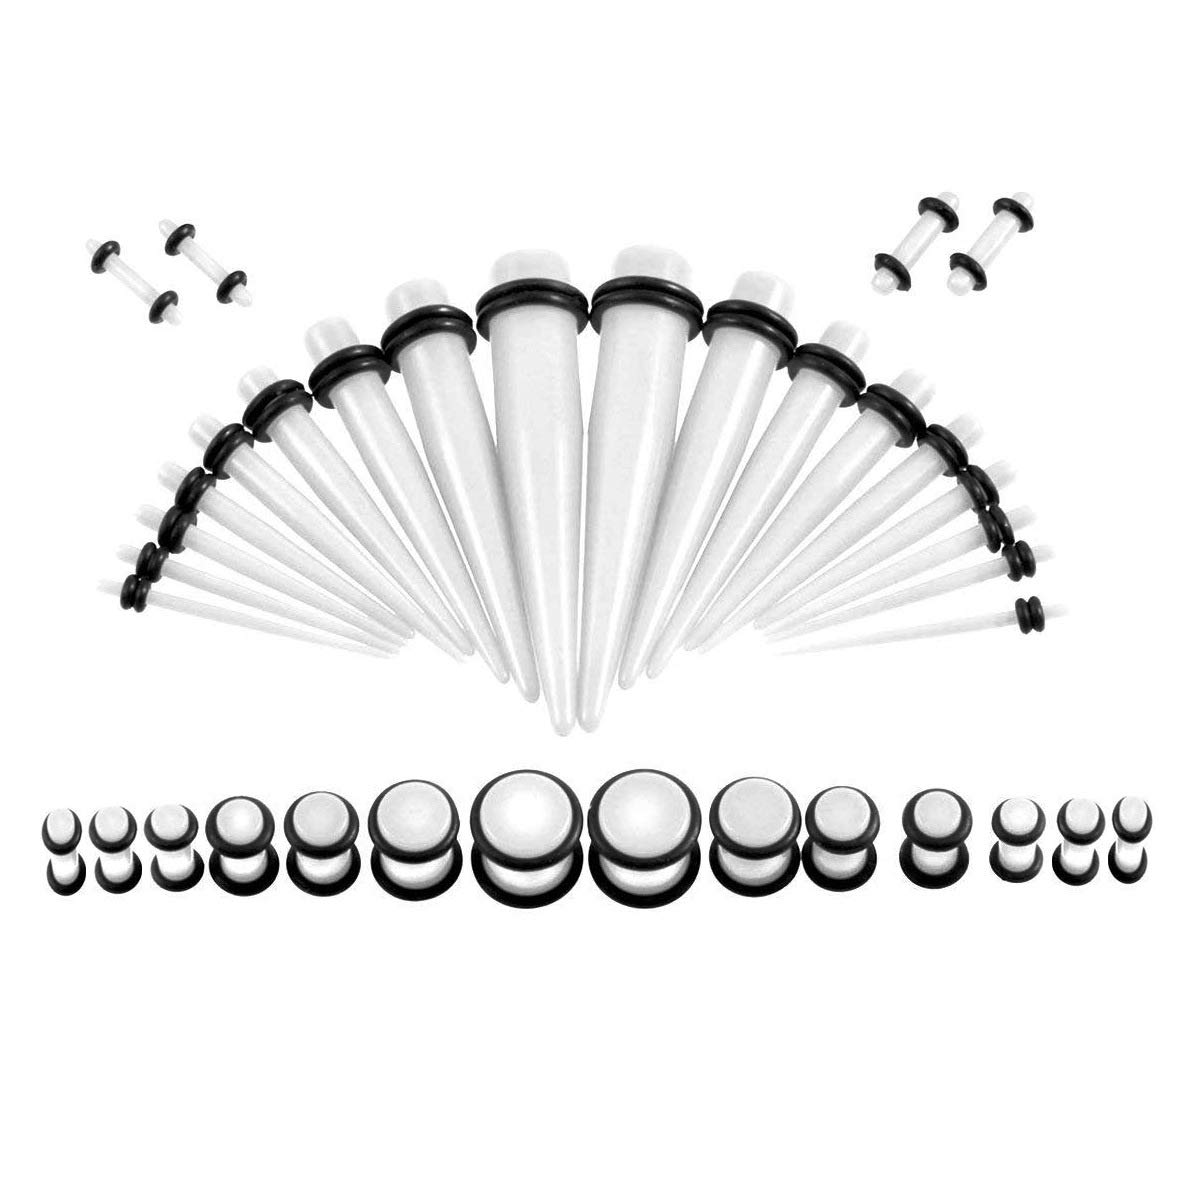 HQLA 36PC Gauges Kit Acrylic Taper Plug 14G-00G Ear Stretching Set Double O-Rings Piercing Jewelry